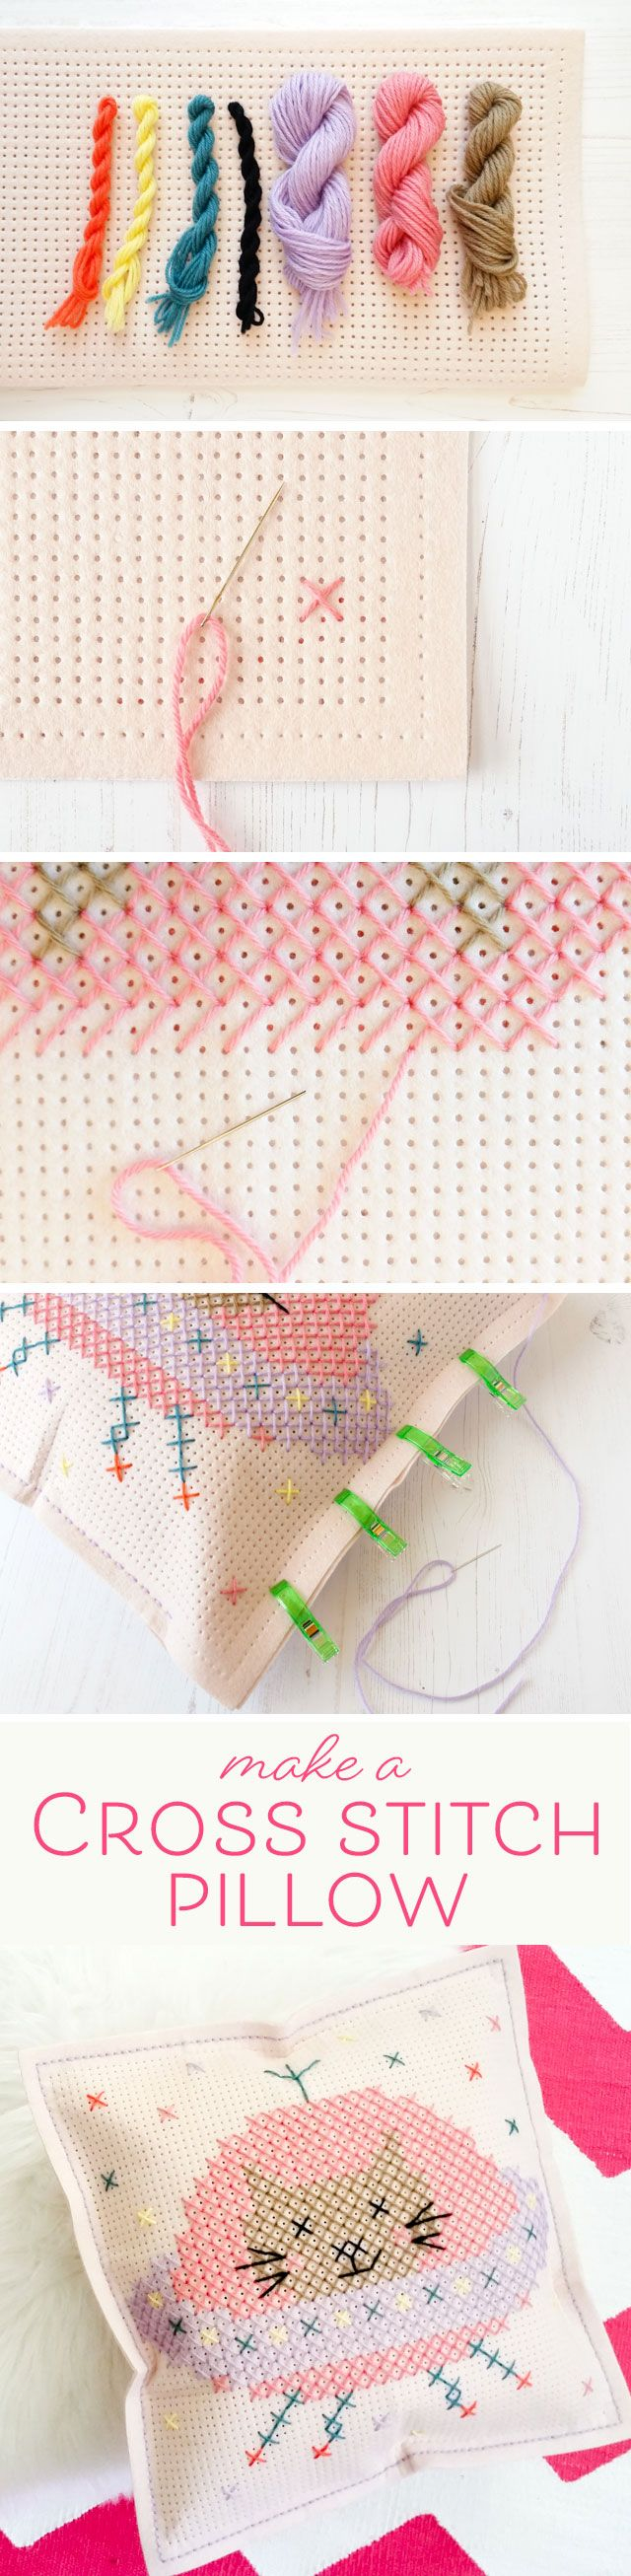 Modern Cross Stitch Pillow : 1408 best Modern cross stitch images on Pinterest Bag patterns, Bed pillows and Craft ideas